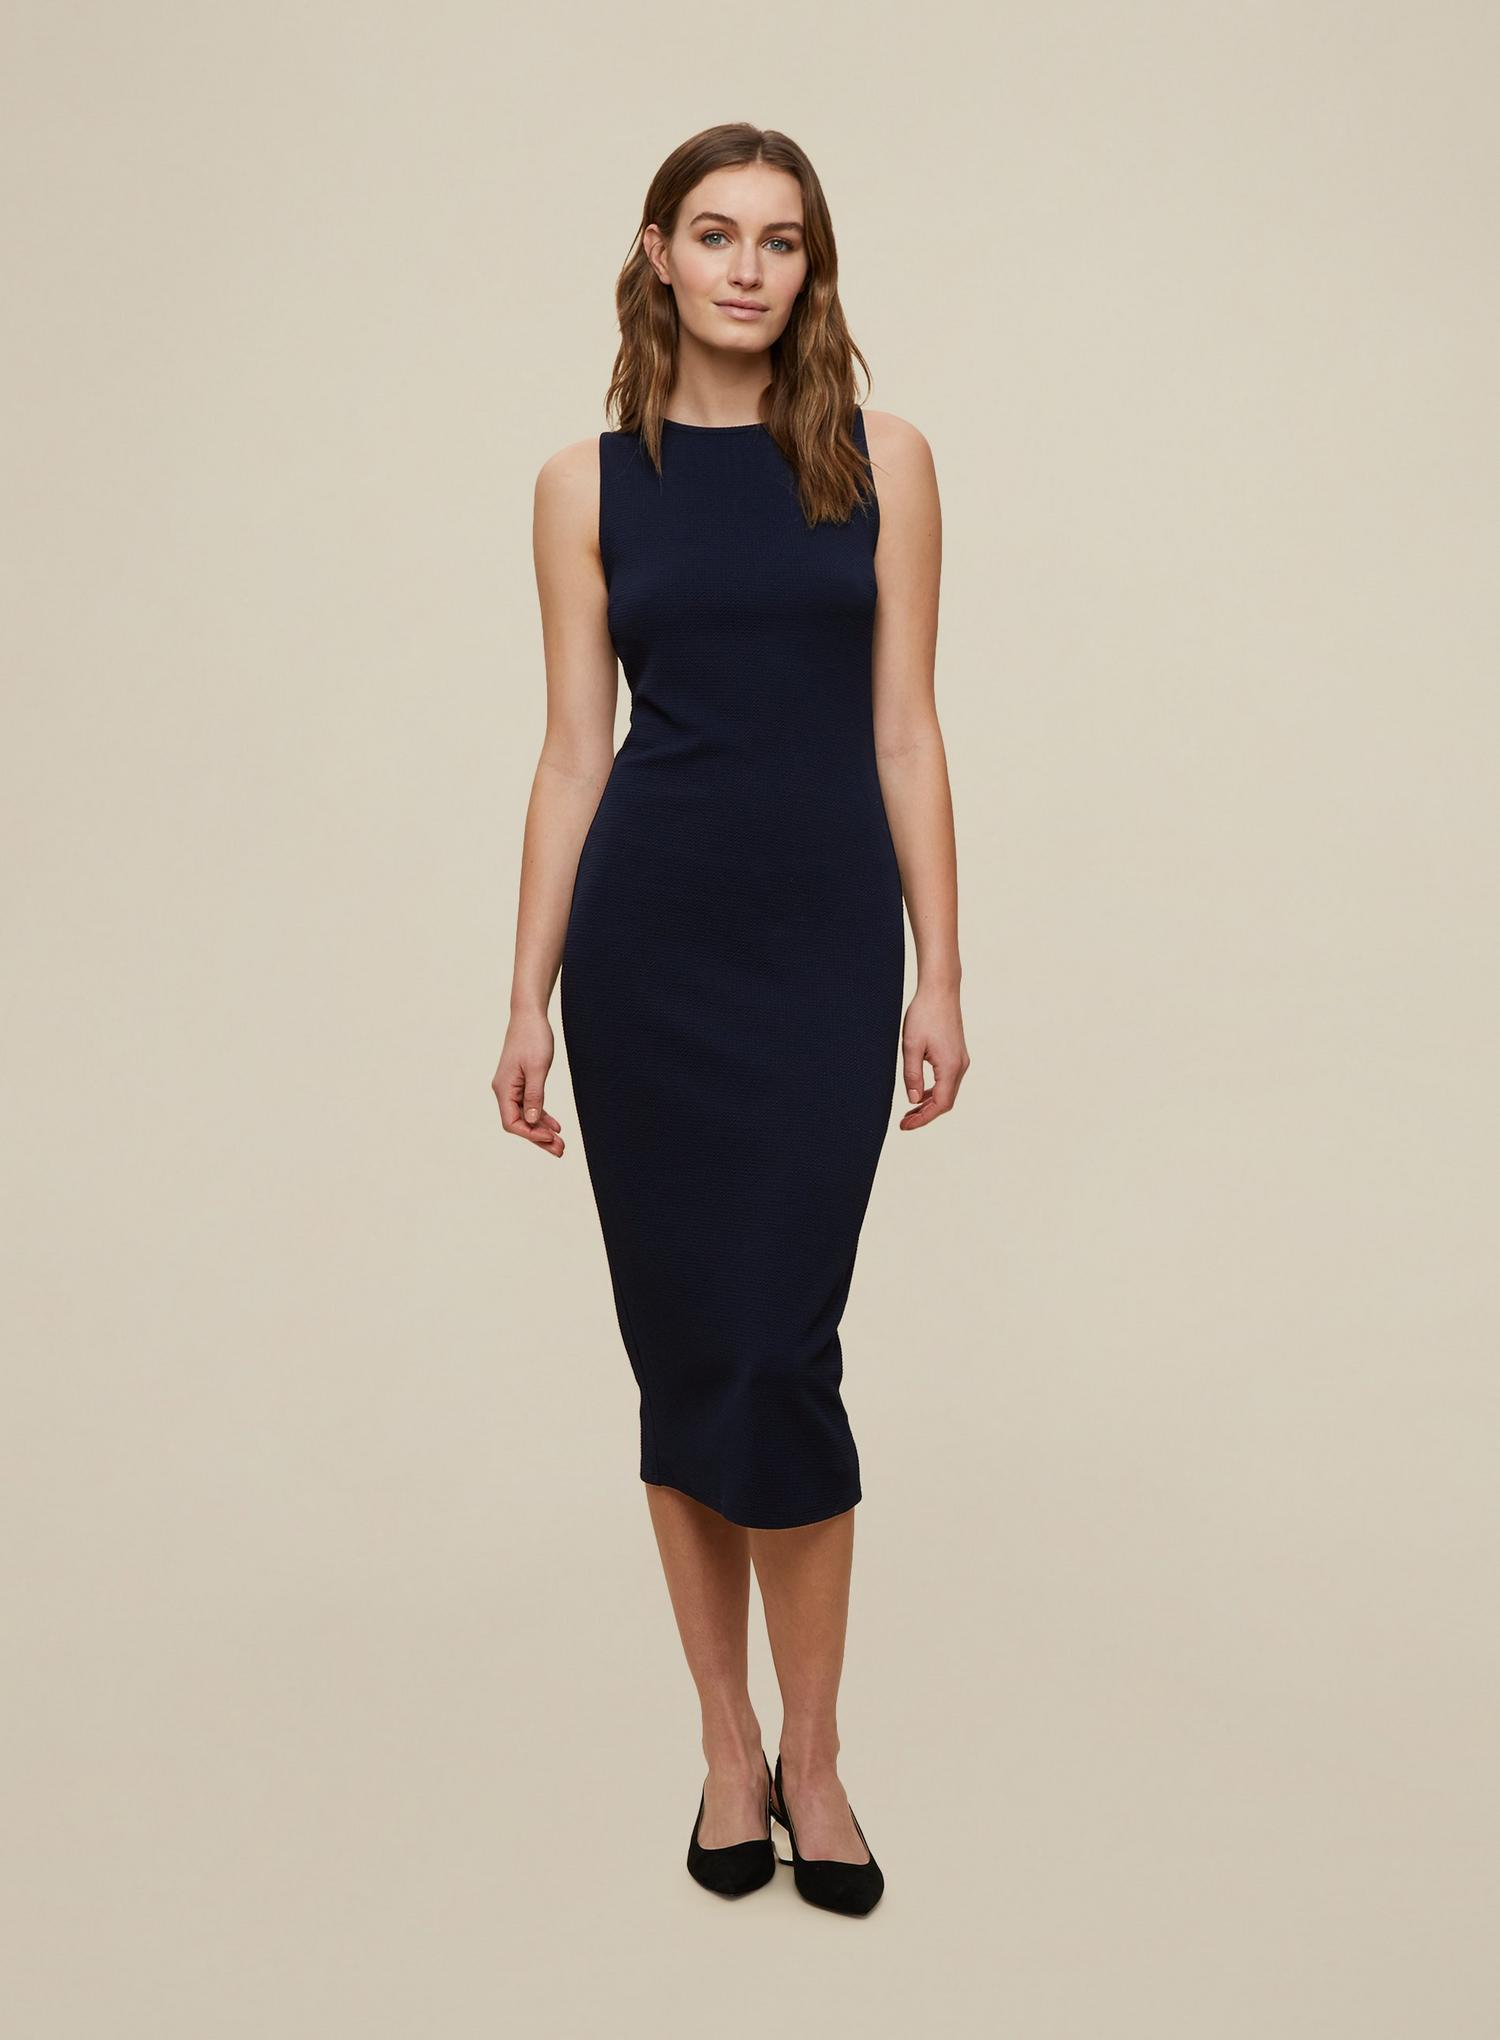 148 Navy Sleeveless Bodycon Dress image number 1